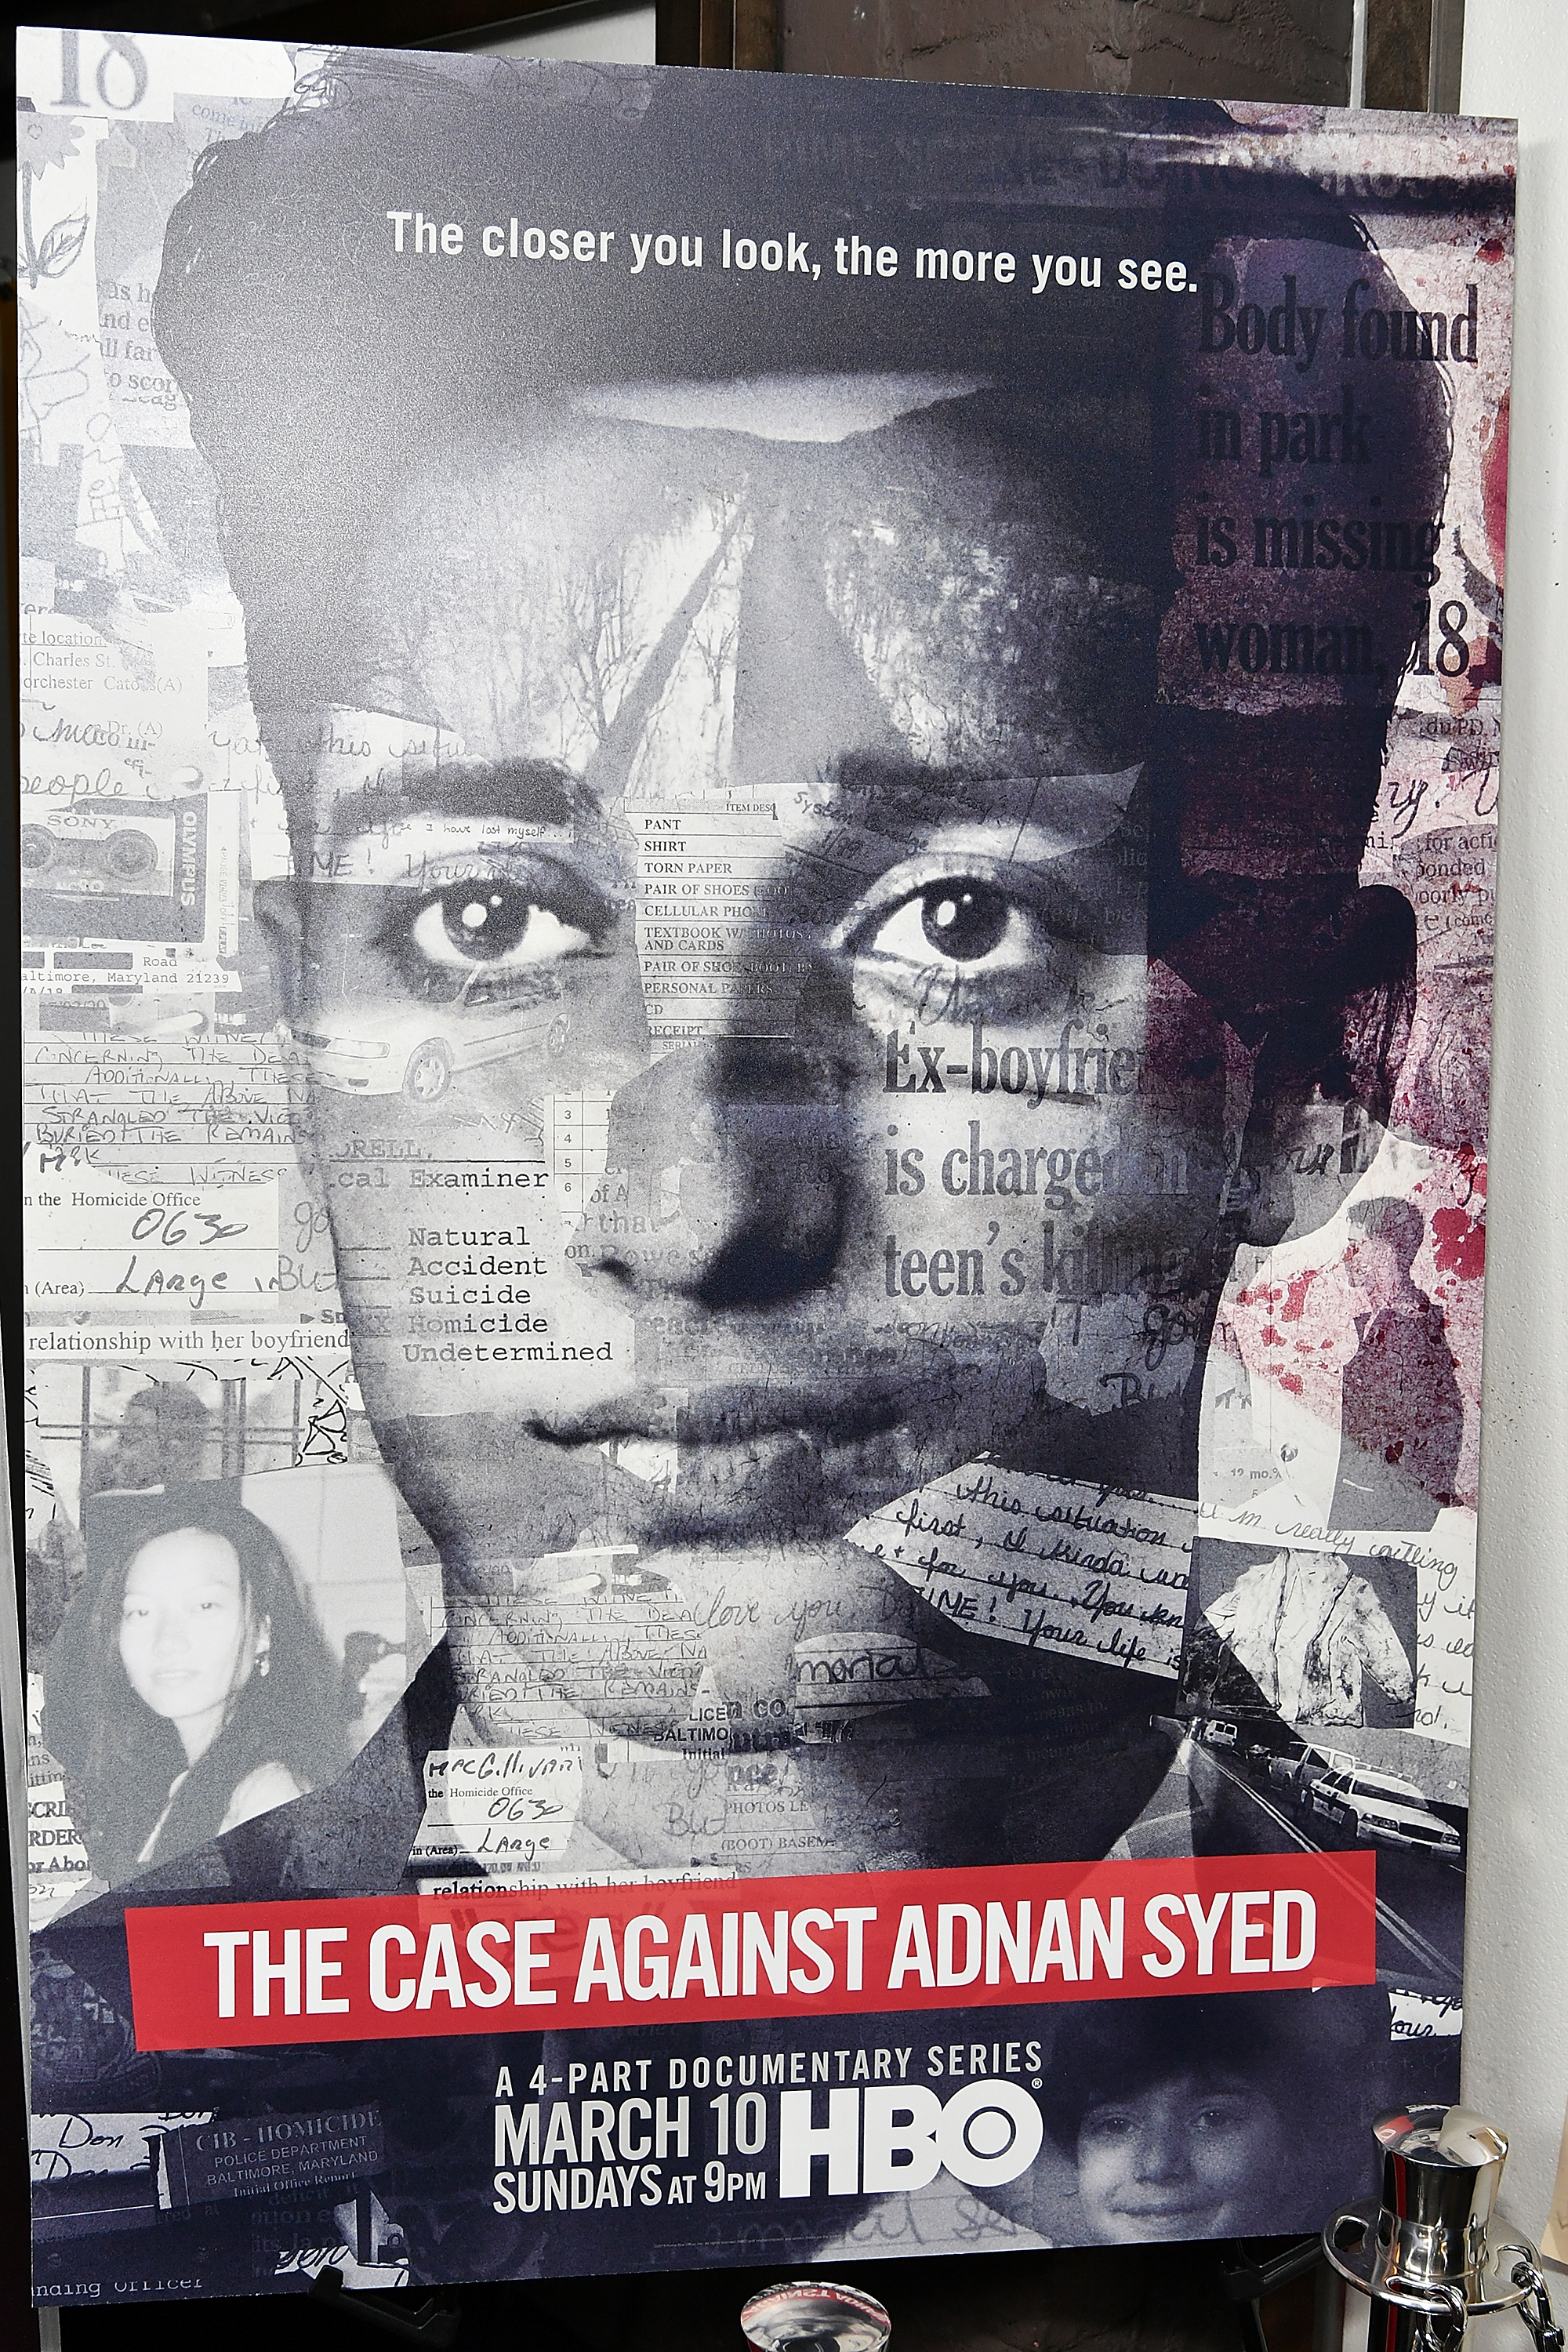 """A view of the poster at NY premiere of HBO's """"The Case Against Adnan Syed"""" at PURE NON FICTION on February 26, 2019 in New York City. (Photo by Slaven Vlasic/Getty Images for HBO)"""